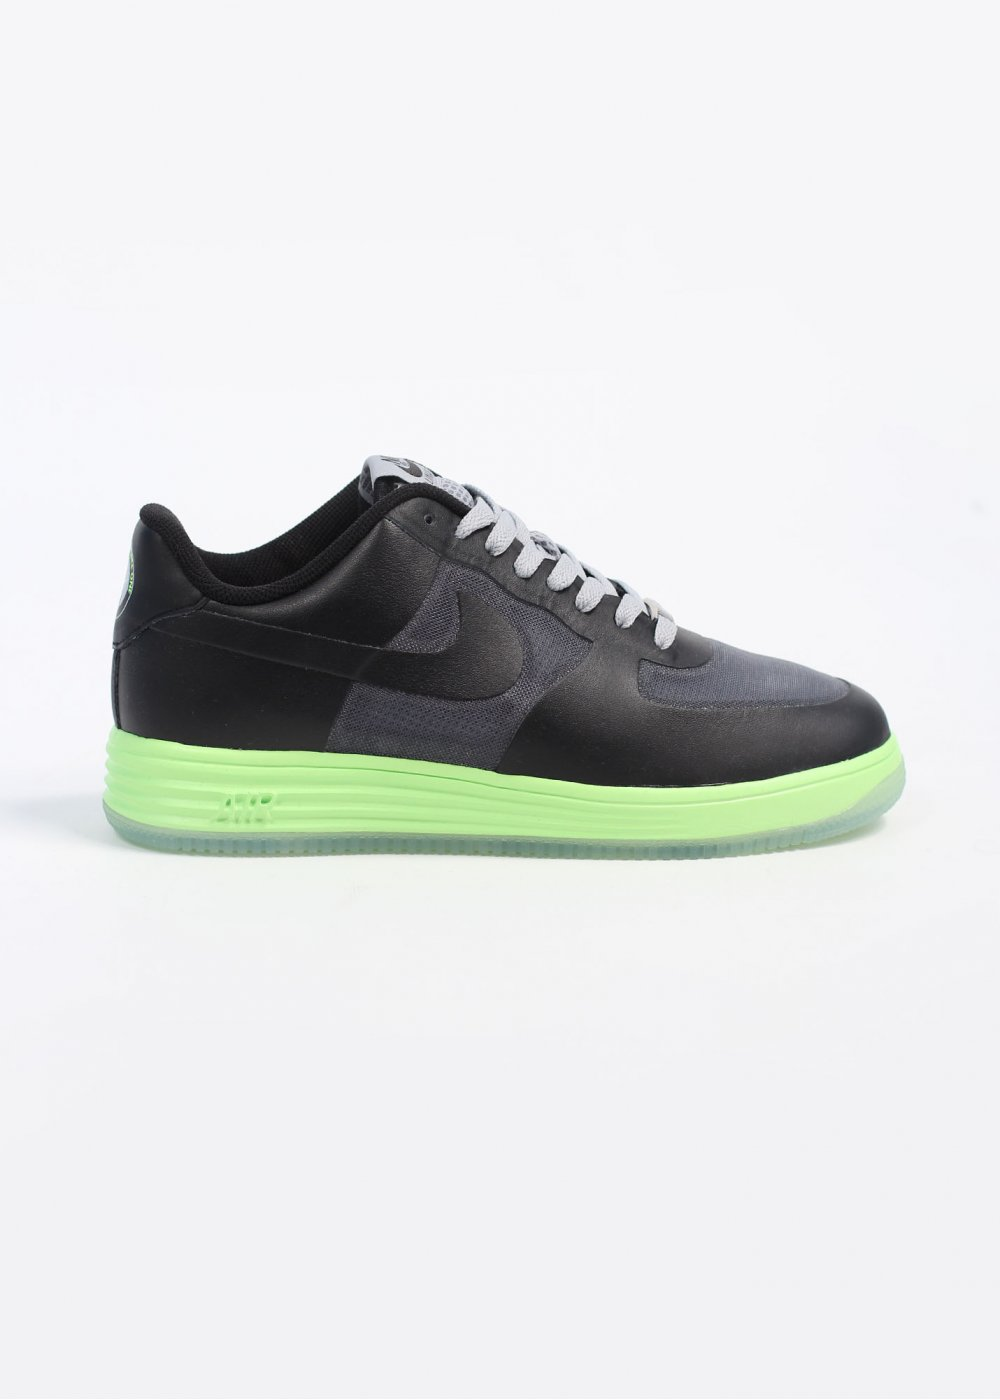 5f2f31ba7521 Lunar Force 1 Fuse Trainers - Grey   Green